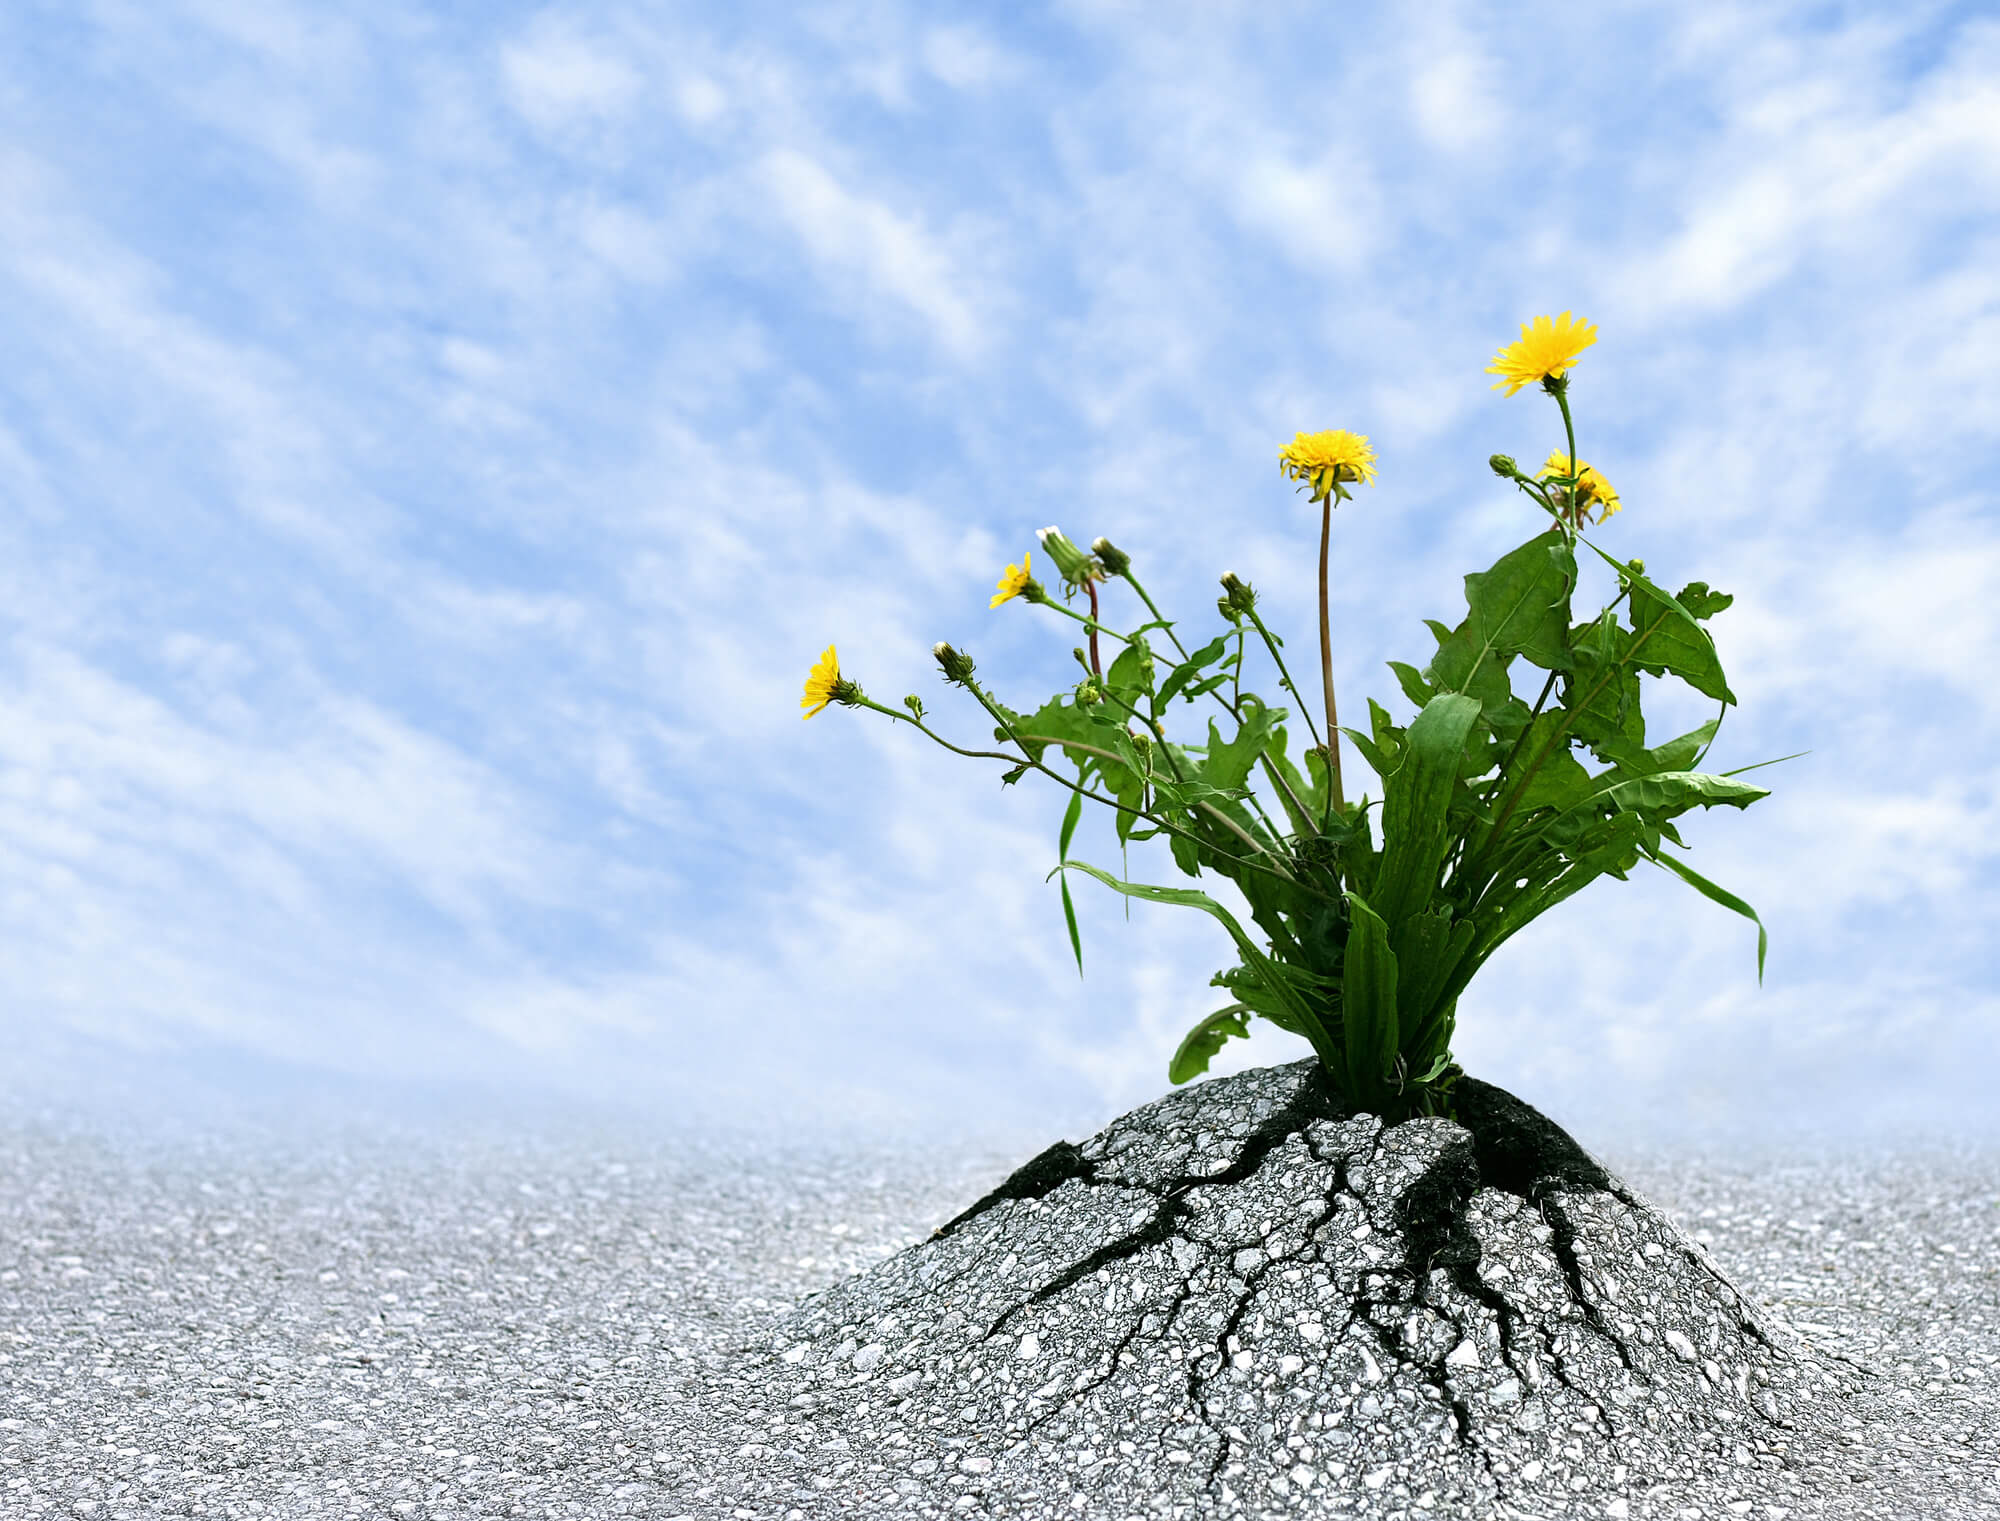 """""""power of life"""" - Yellow flowers growing through concrete"""